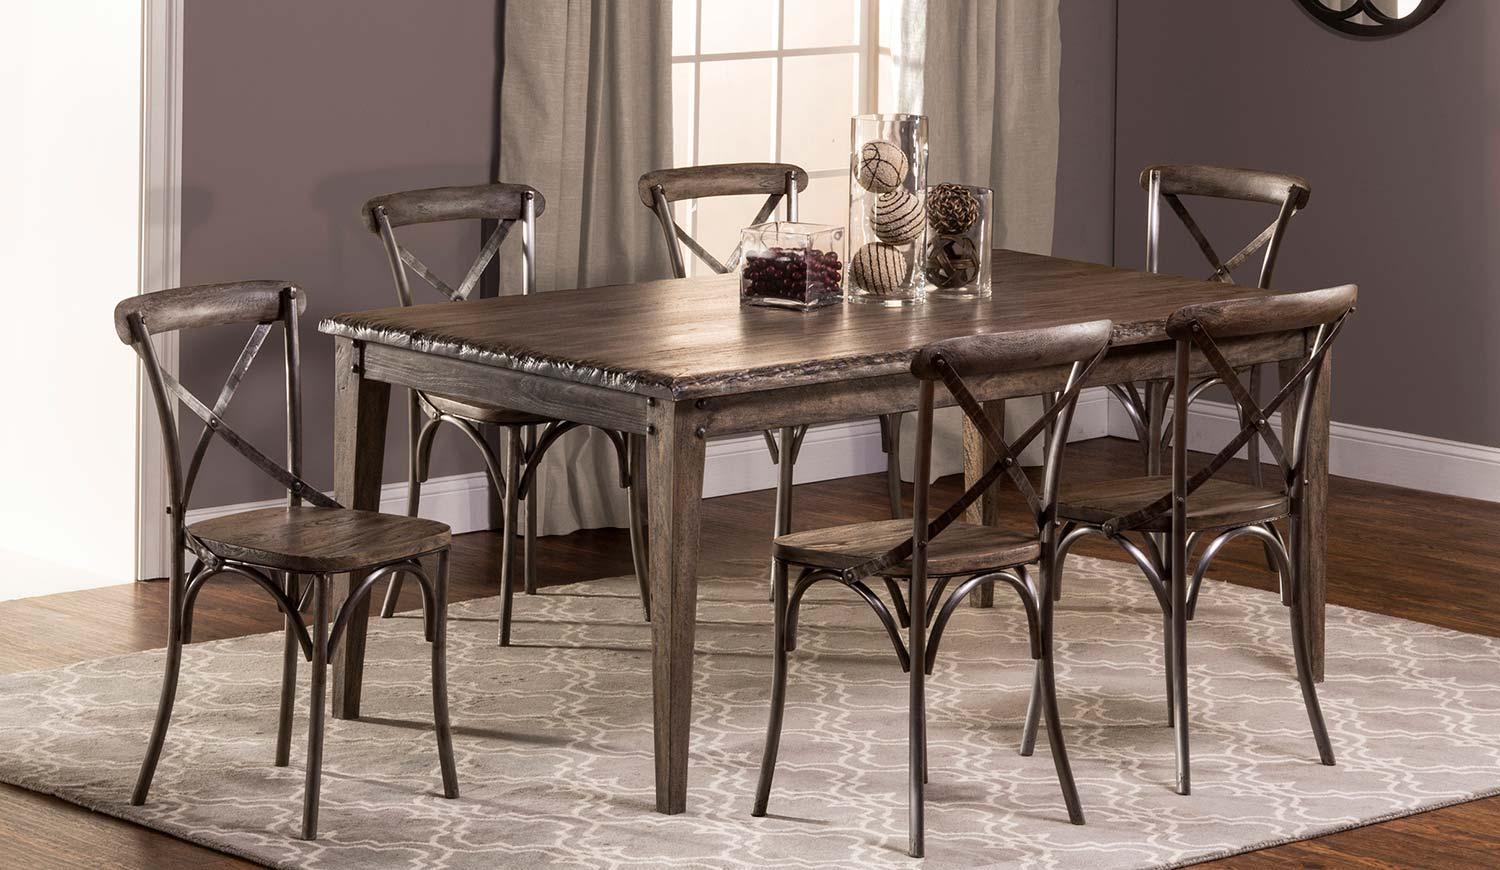 Hillsdale Lorient 7 PC Rectangle Dining Set with X Back Chair - Washed Charcoal Gray/Black